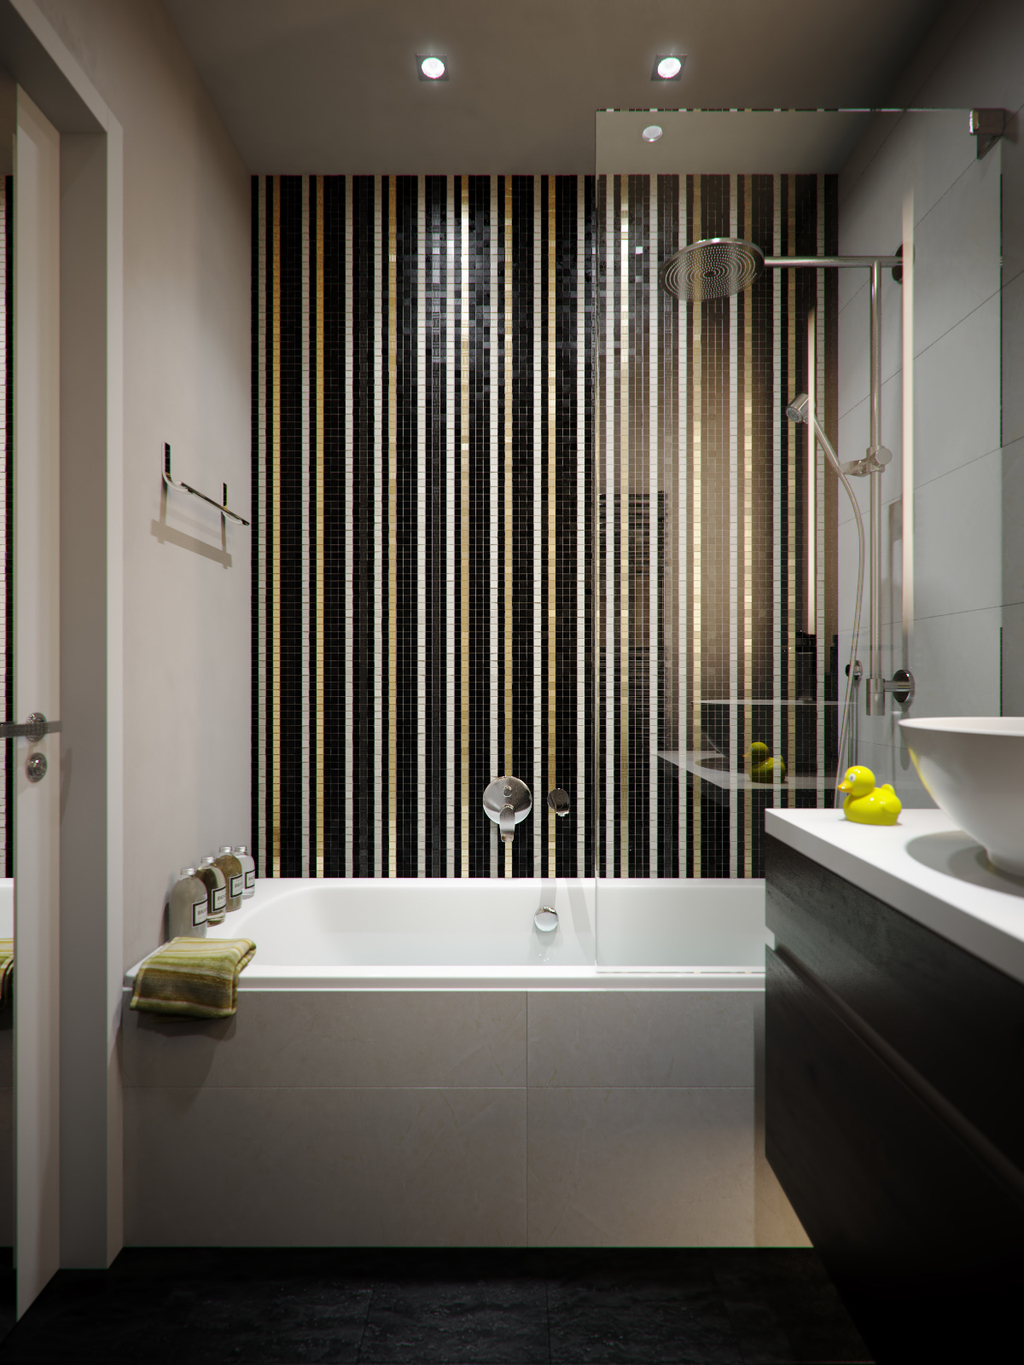 6 8 bathroom design furniture and color for small space - Luxury bathrooms in small spaces ...